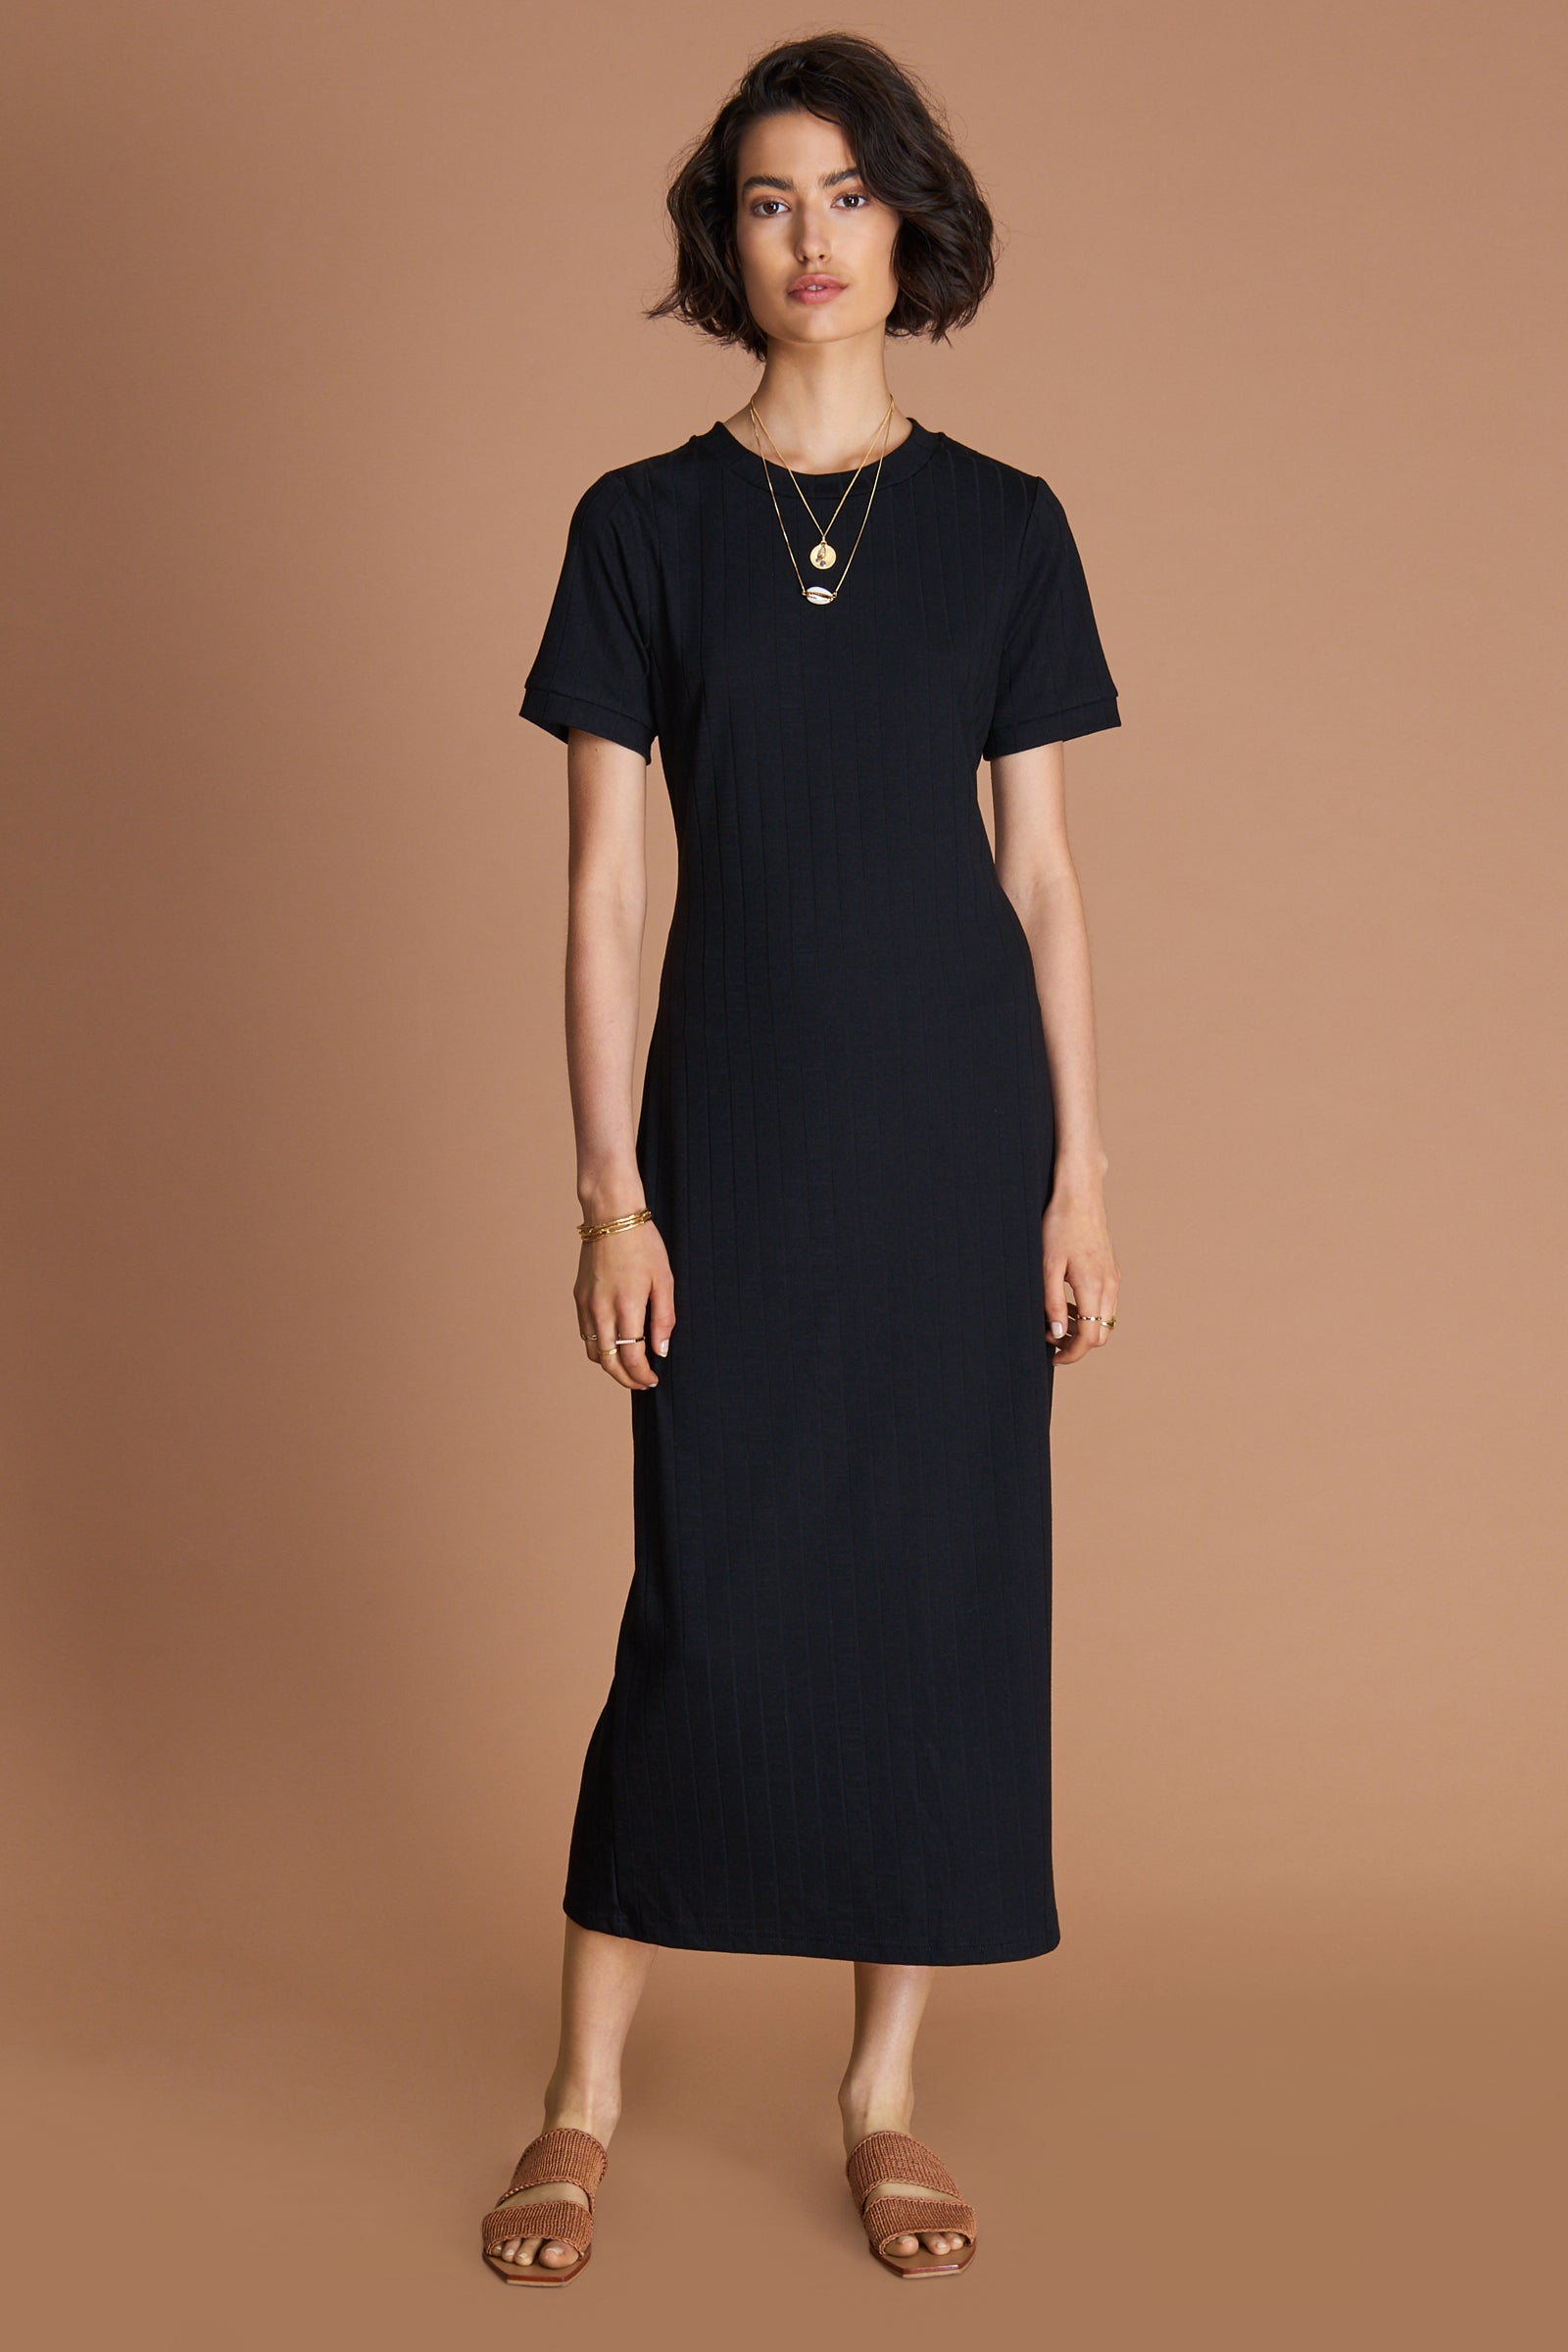 THE ROMIE DRESS